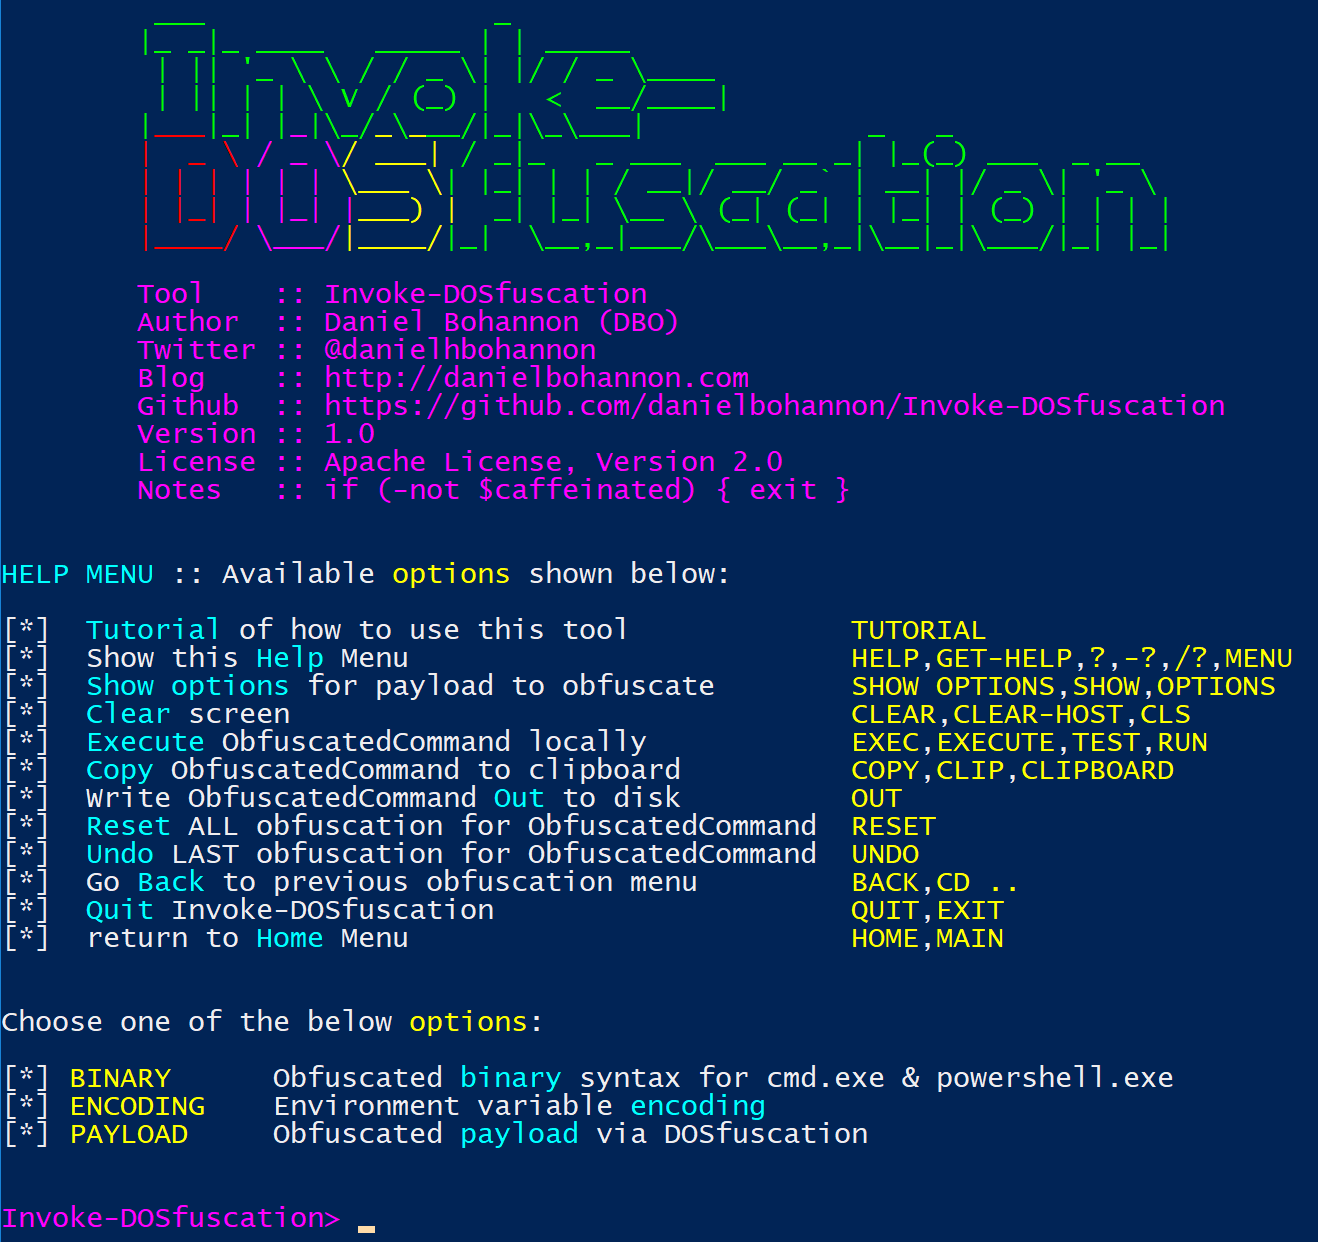 Invoke-DOSfuscation Screenshot